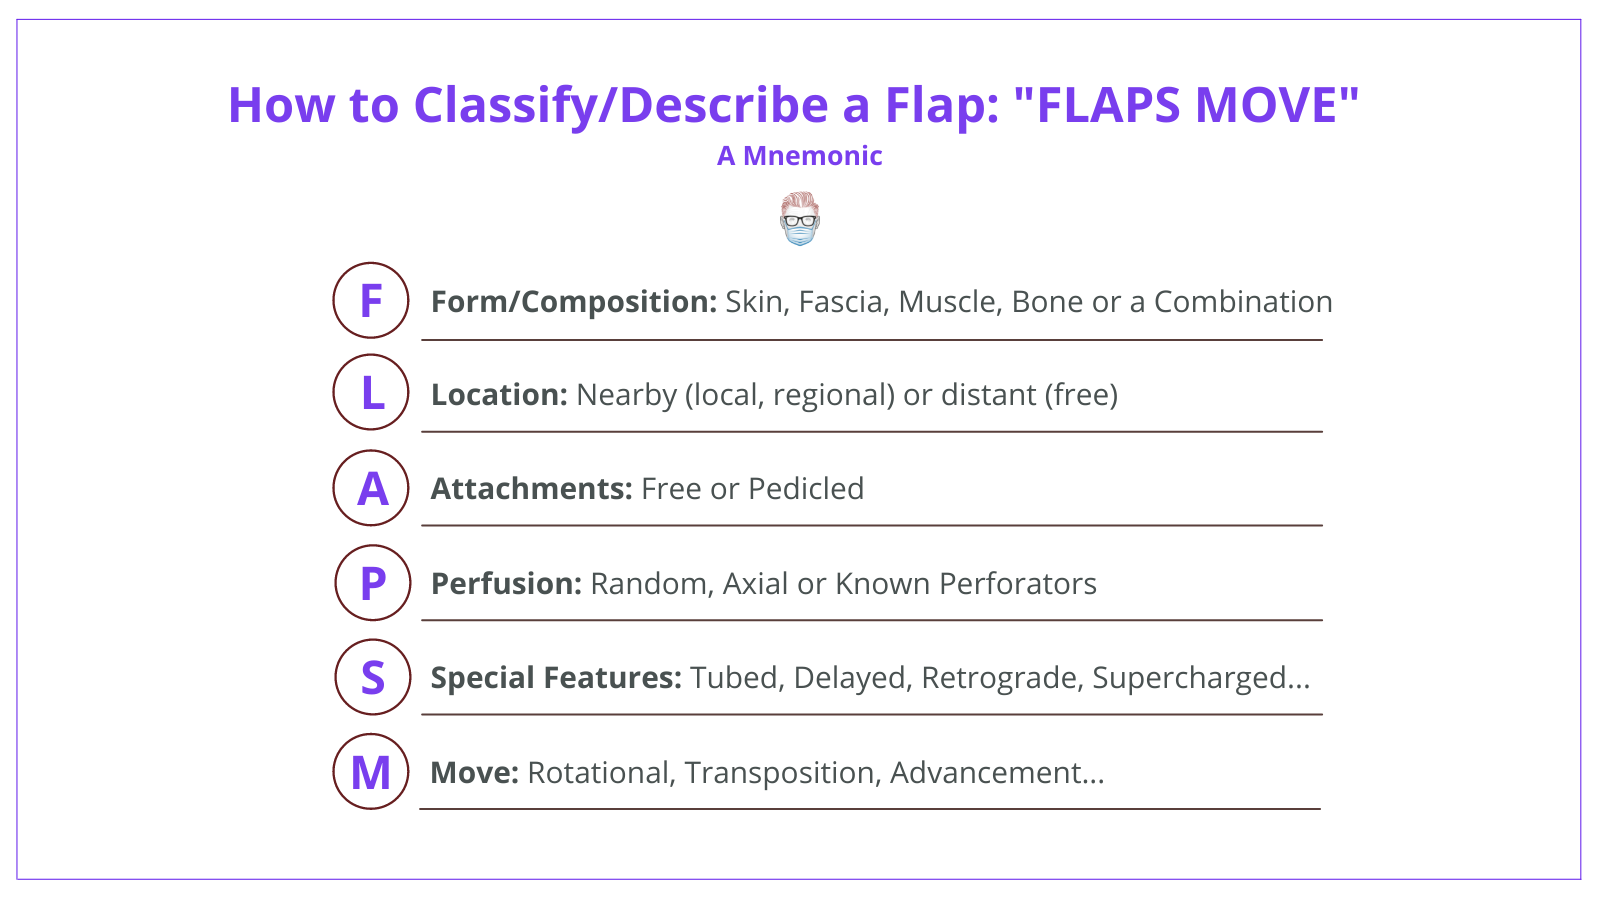 A mnemonic to help describe a flap in a clinical setting - form, location, attachements, perfusion, movement